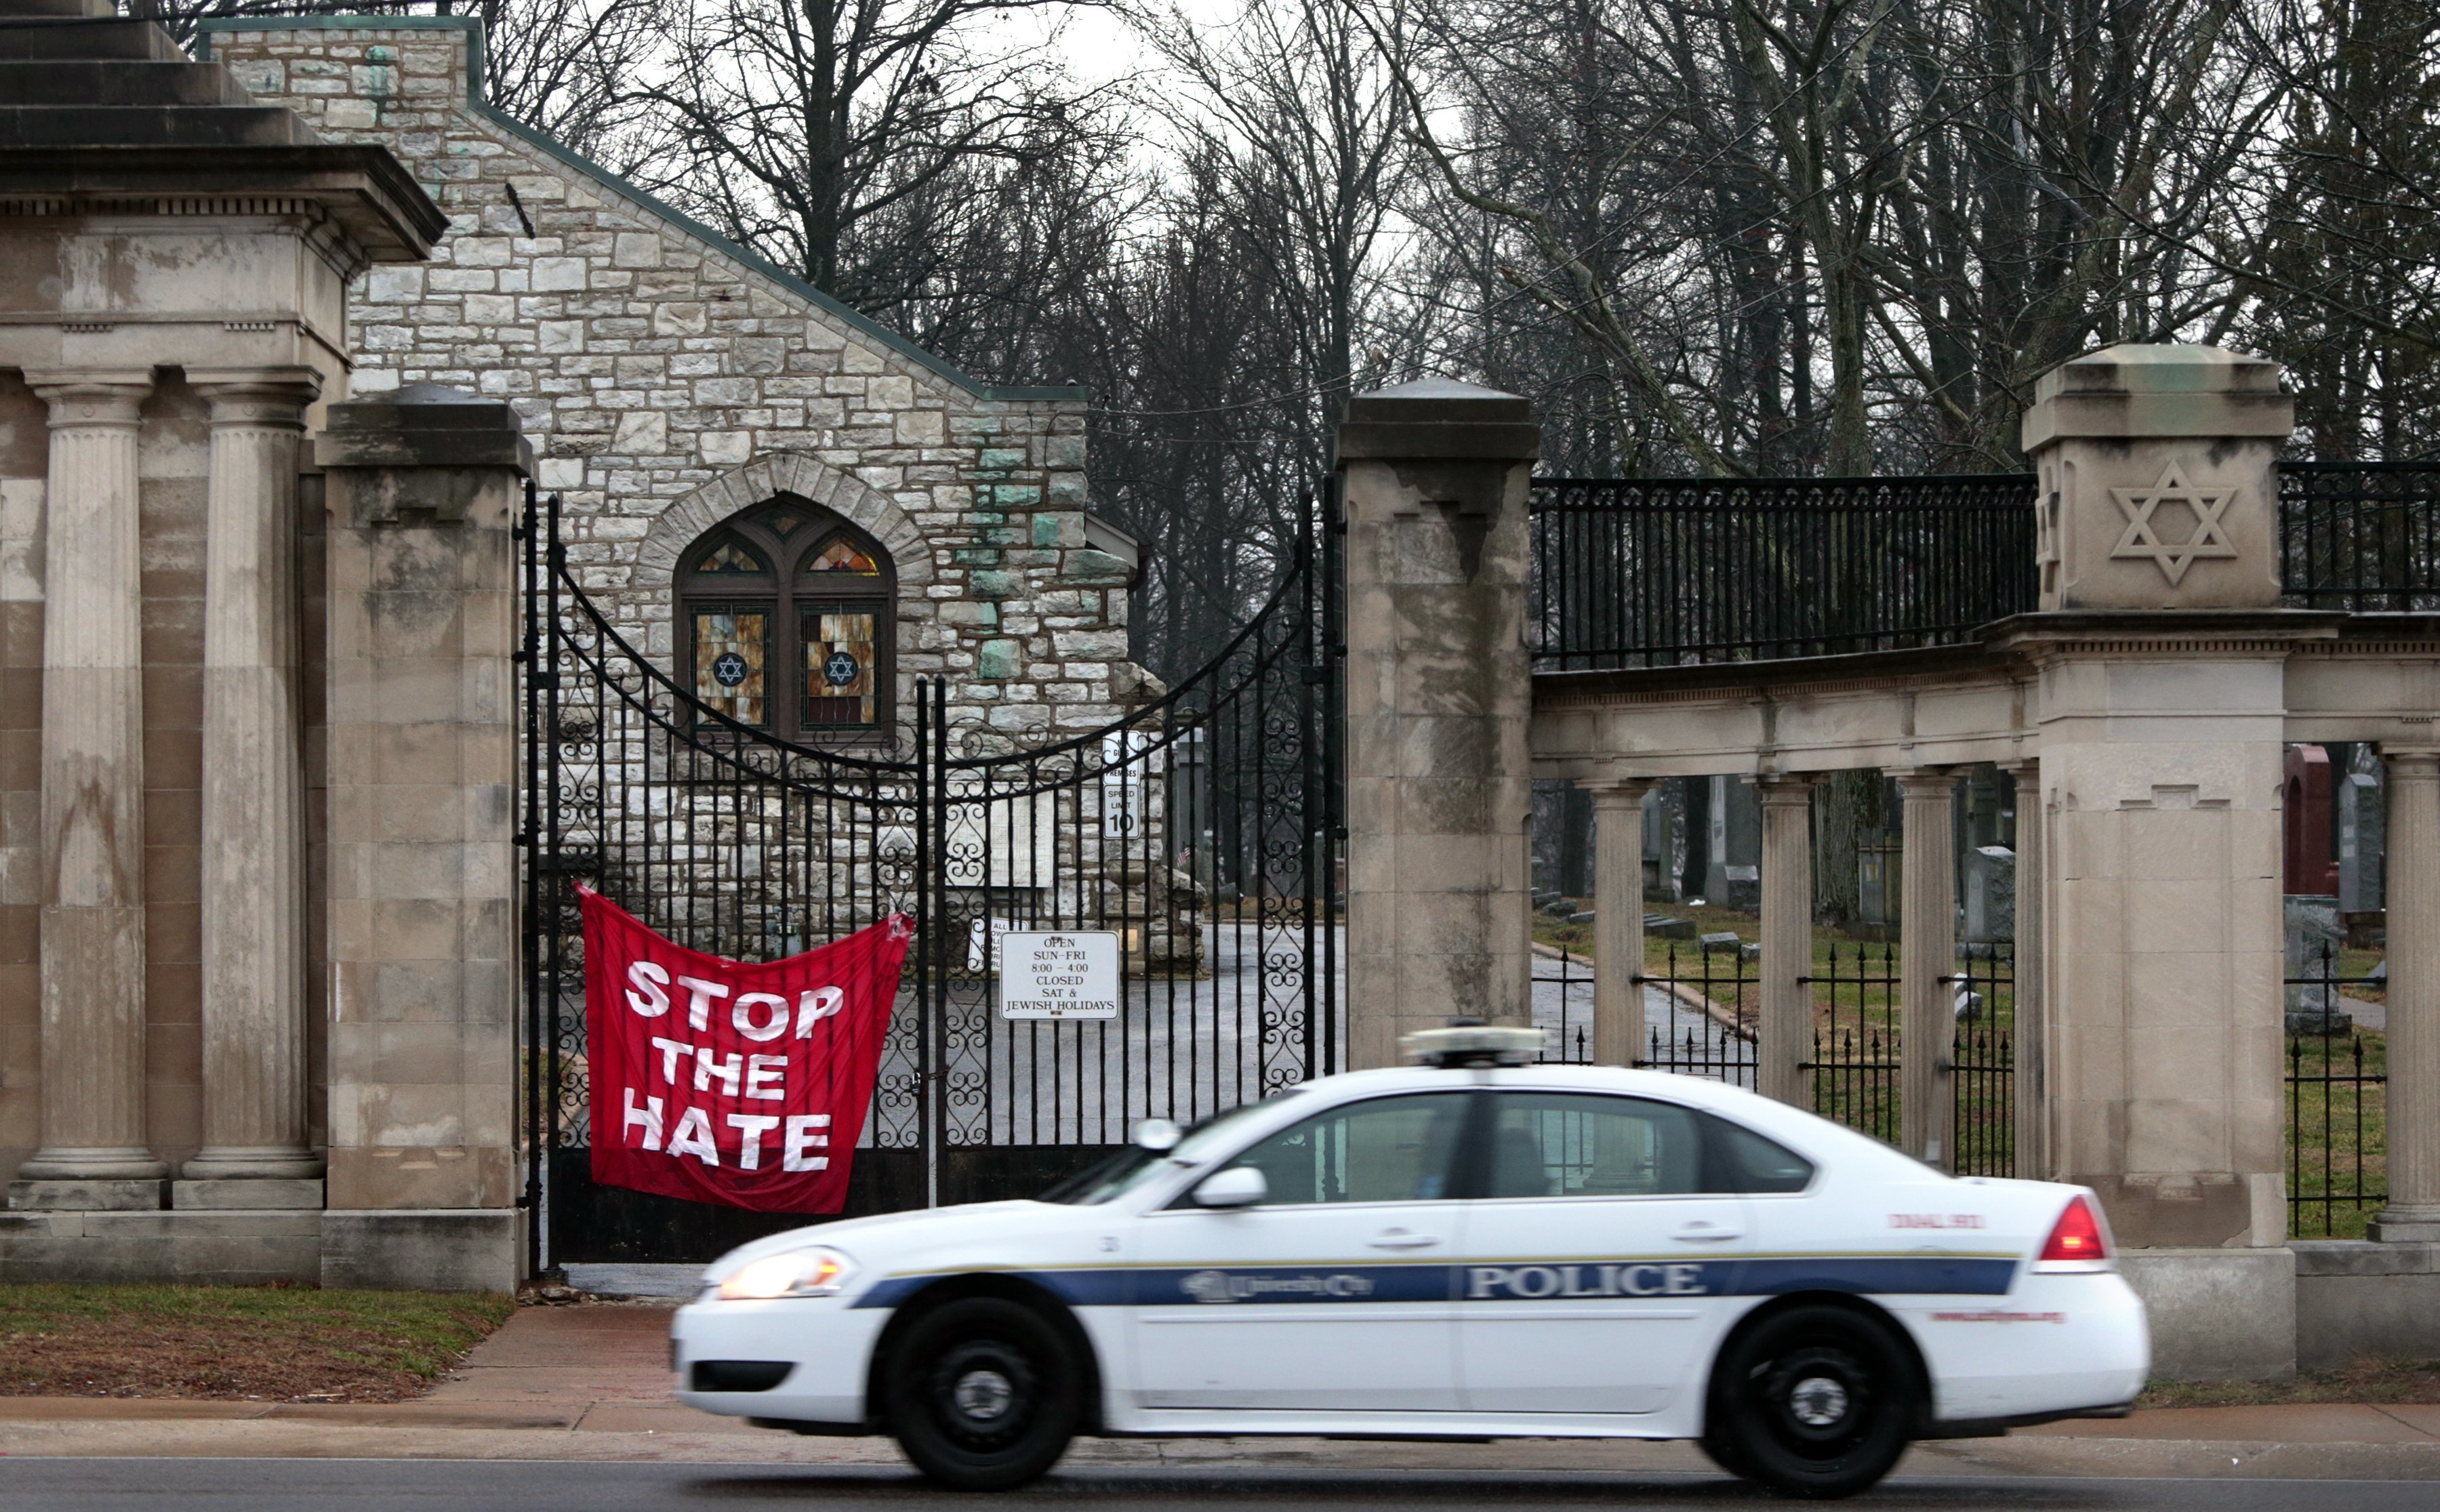 A University City police car patrols in front of Chesed Shel Emeth Cemetery in University City, Mo., on Feb. 21, 2017, following vandalism there. Separately, Jewish Community Centers across the country have recently been the target of bomb threats.